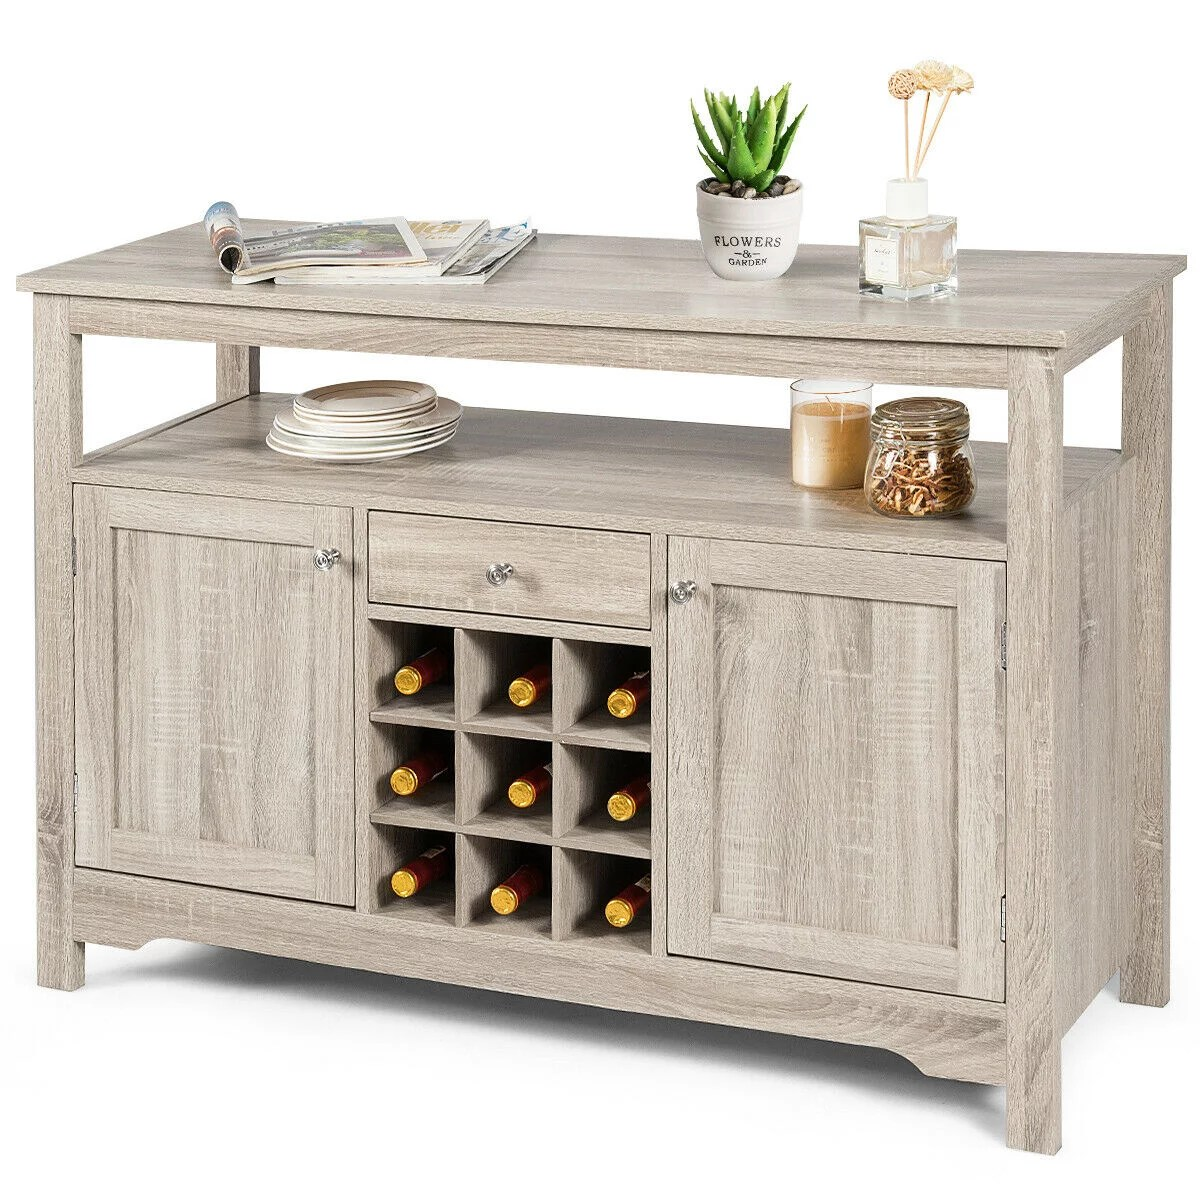 gymax buffet server sideboard wine cabinet console table grey home walmart com